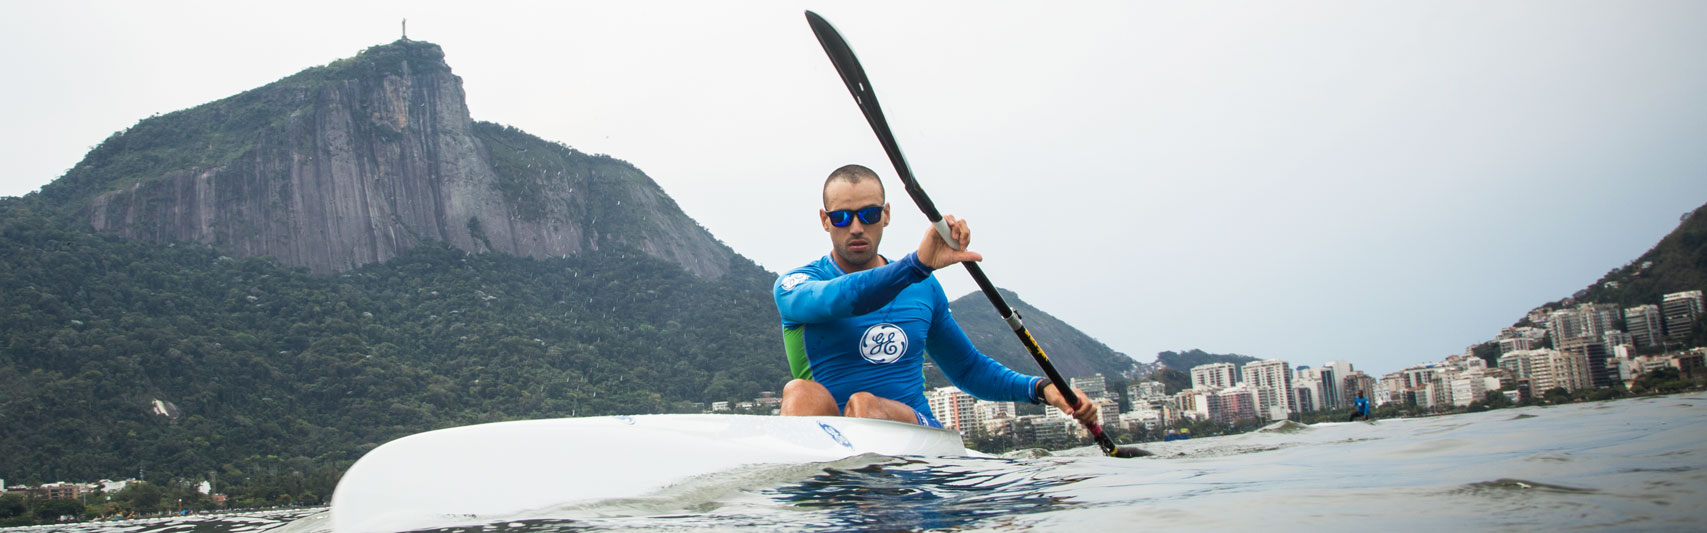 Brazil canoe team uses Predix app to provide real-time data on team performance